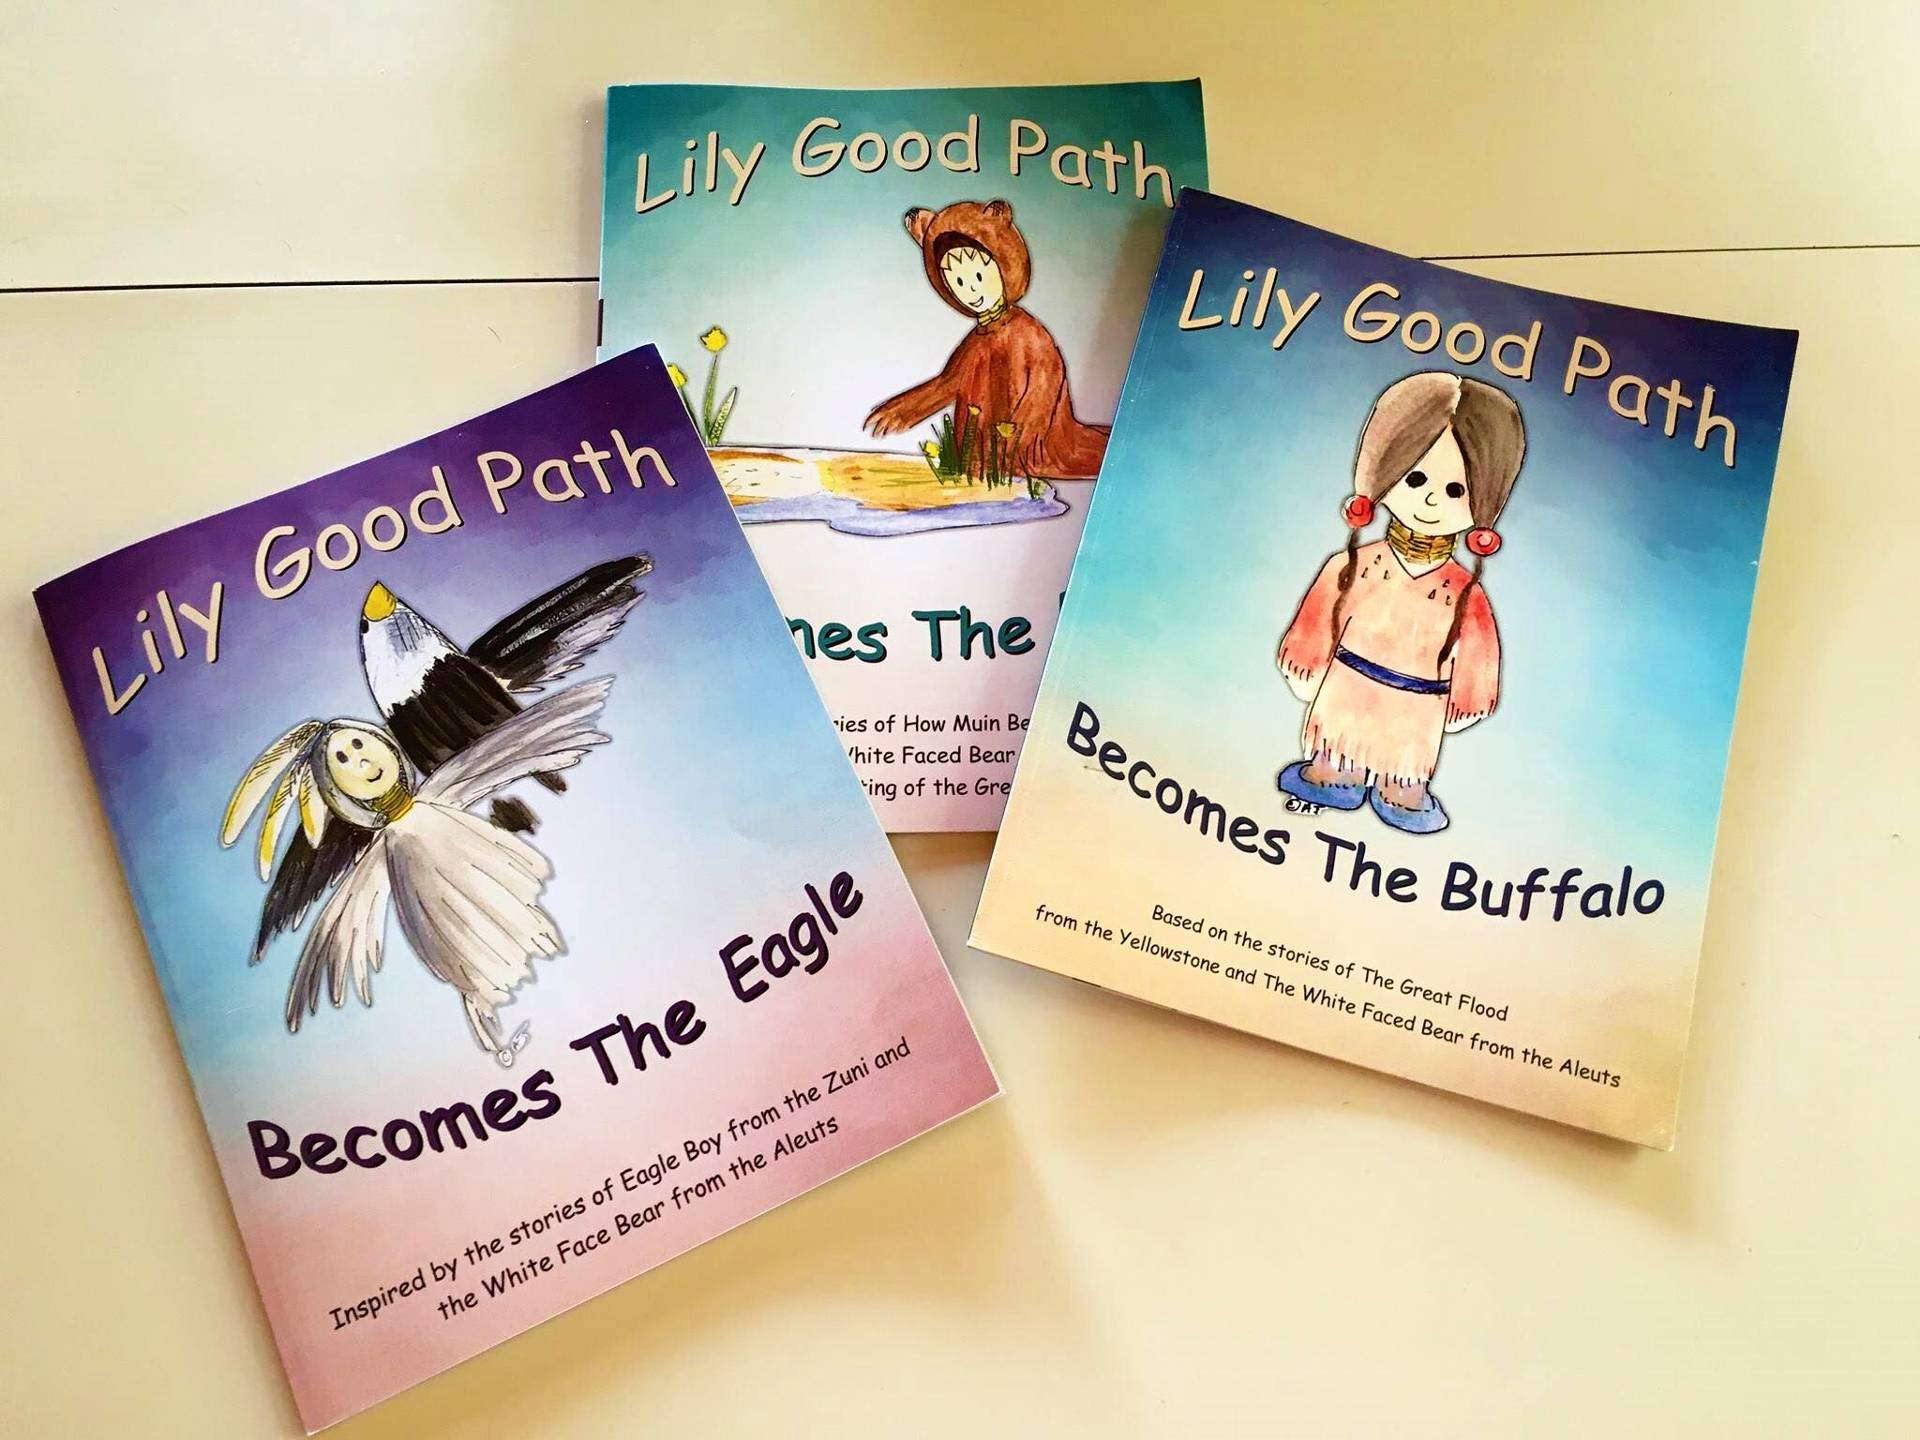 Lily Good Path